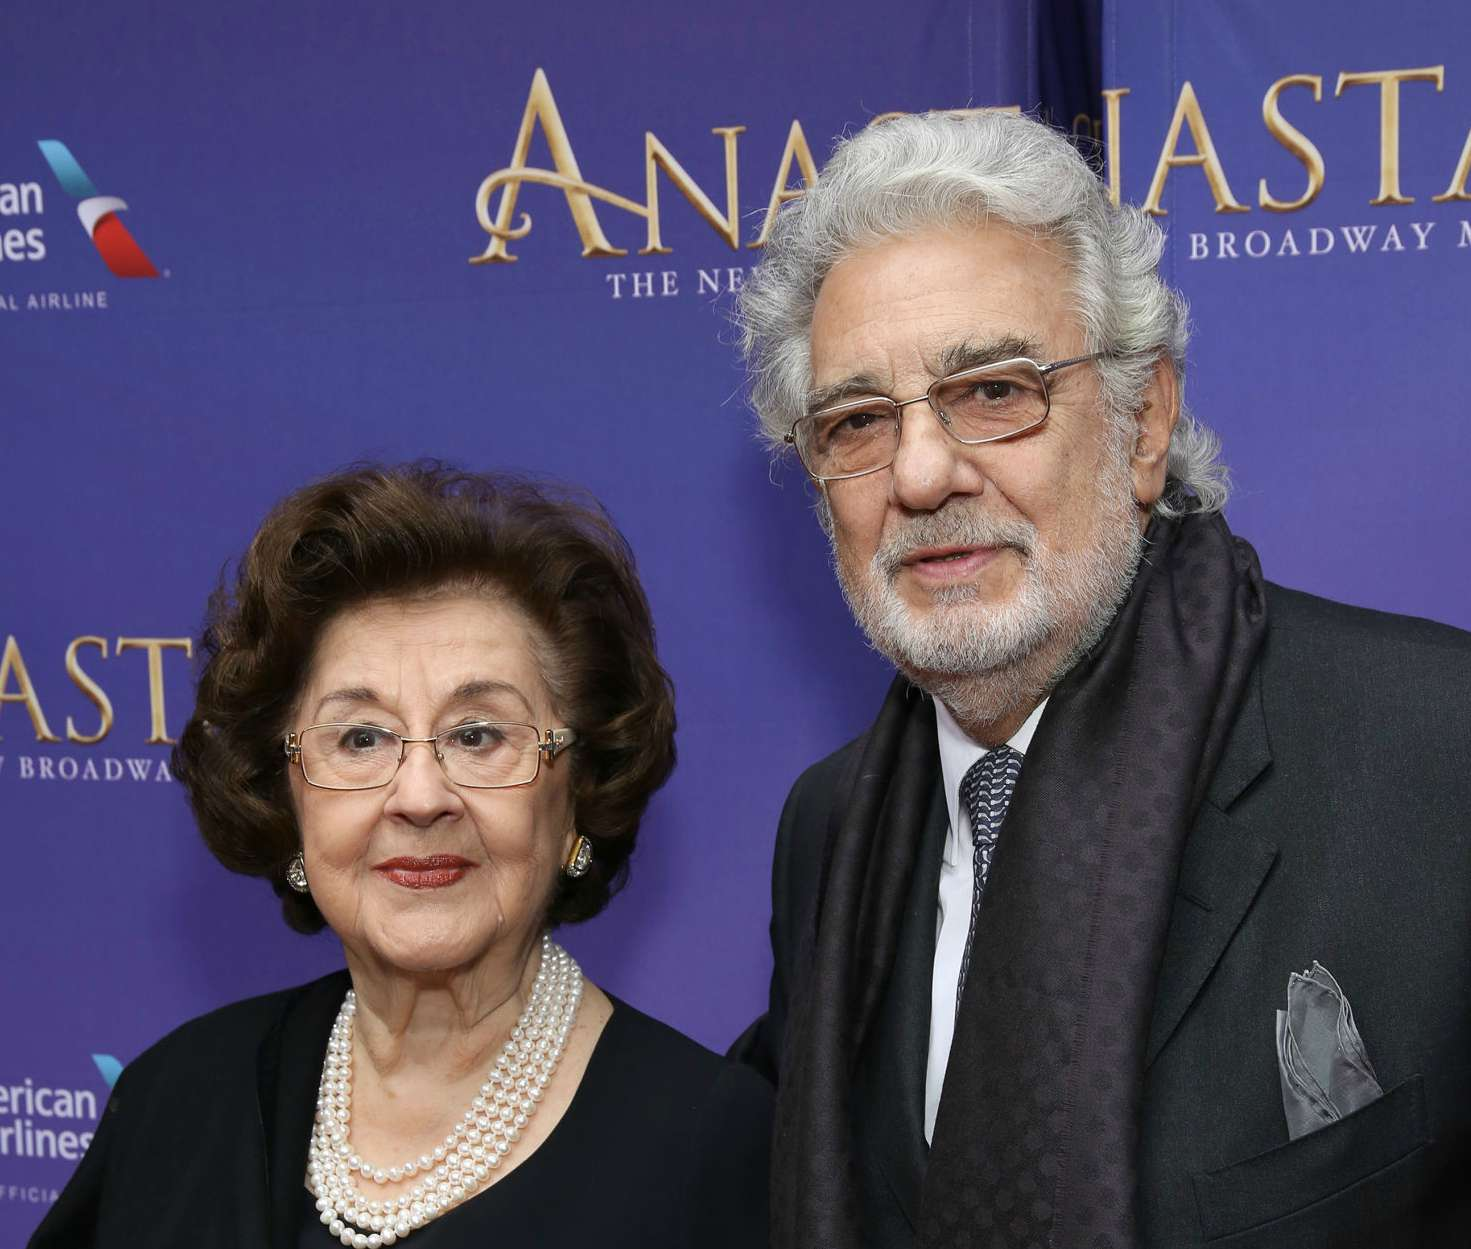 Placido Domingo and wife Marta Domingo attend Broadway Opening Night performance of 'Anastasia' at the Broadhurst Theatre on April 24, 2017 in New York City